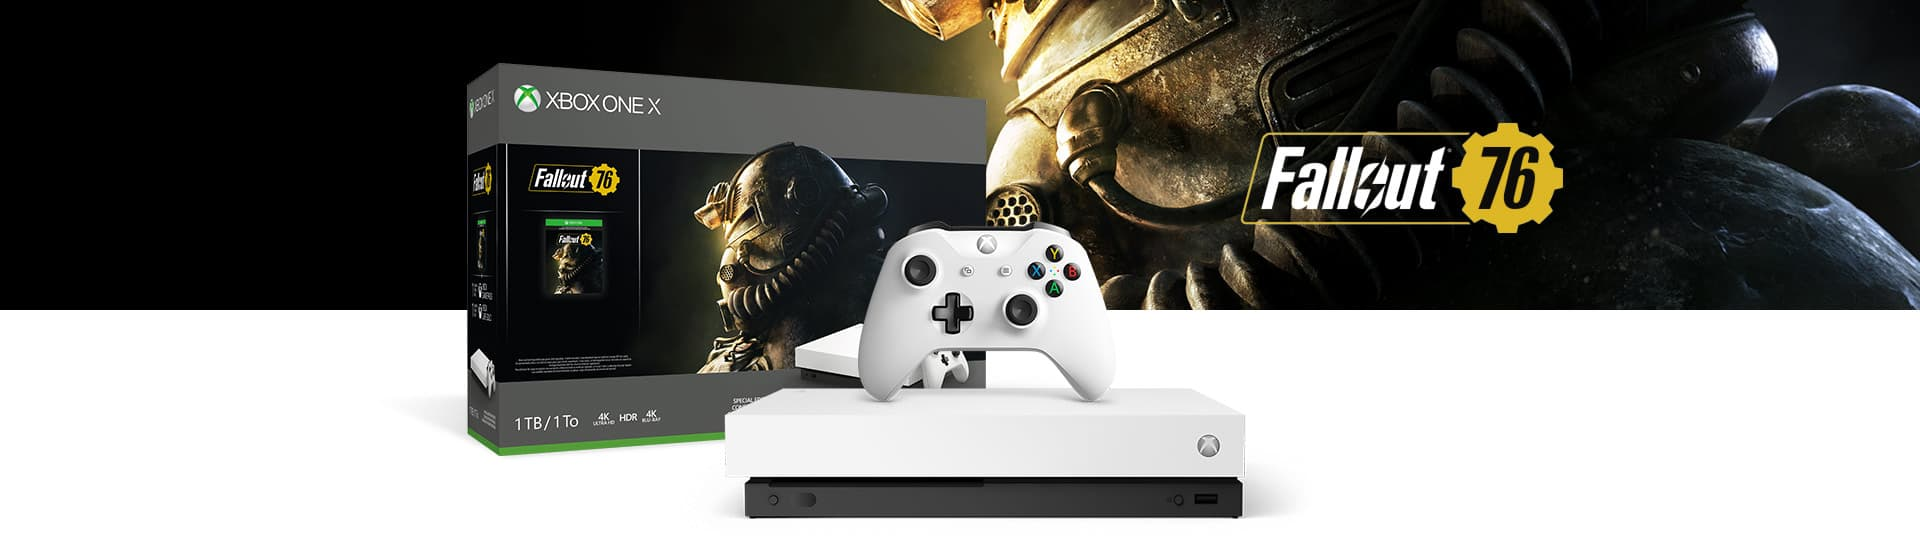 Save $50 on select xbox one bundles on the microsoft store - onmsft. Com - january 28, 2019